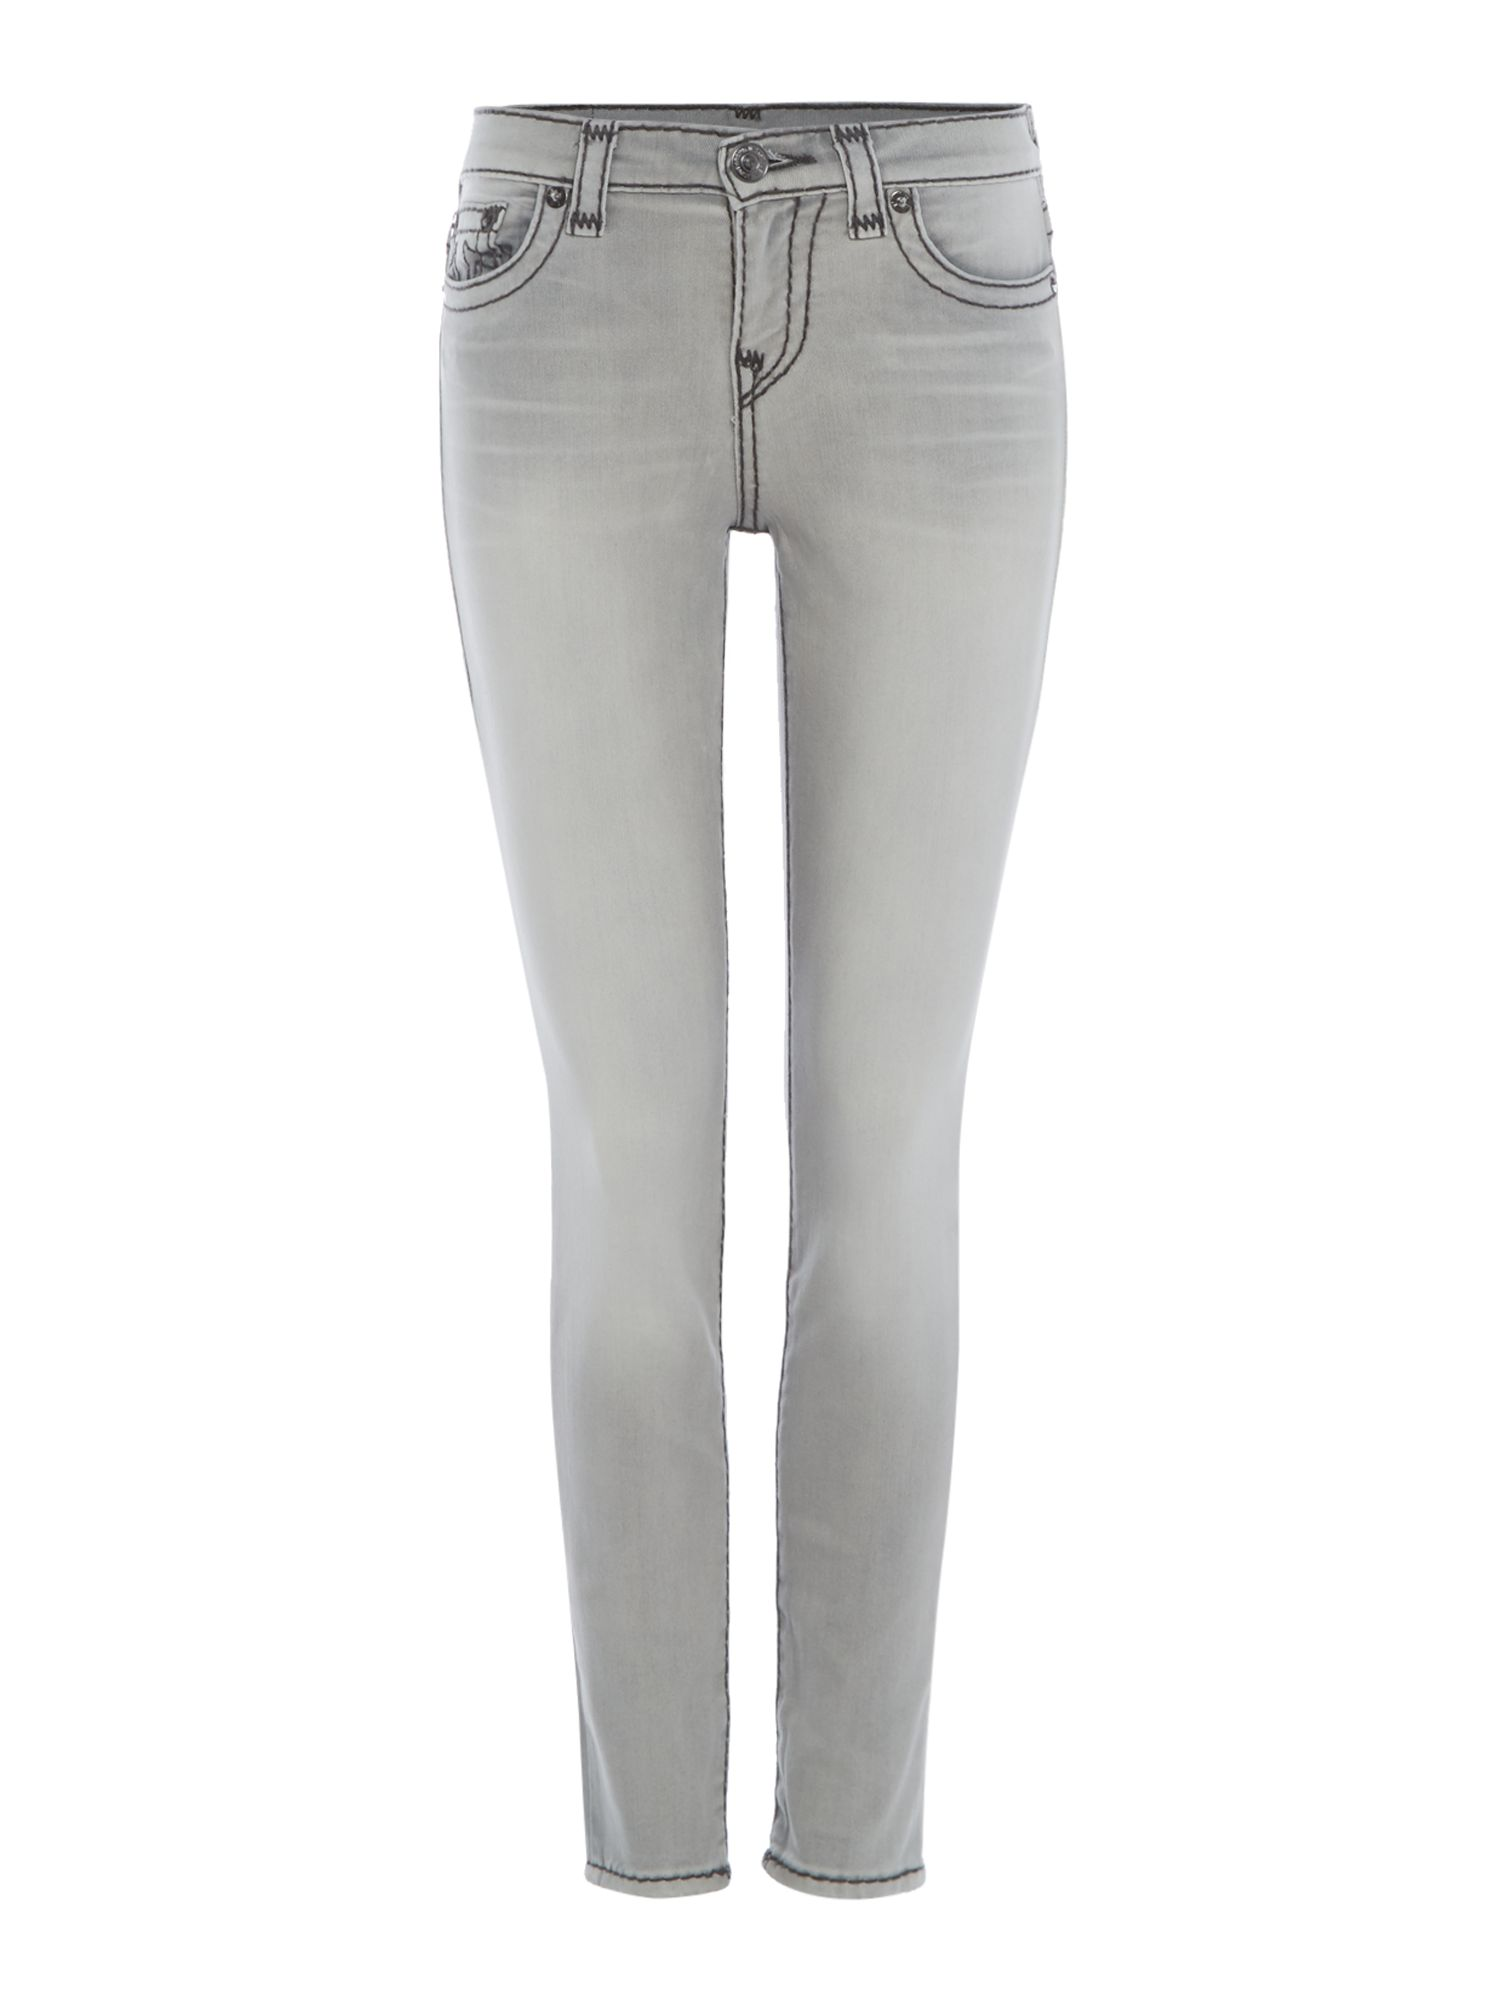 Halle Super T Jeans With Ripped Knee Detail, Light Grey